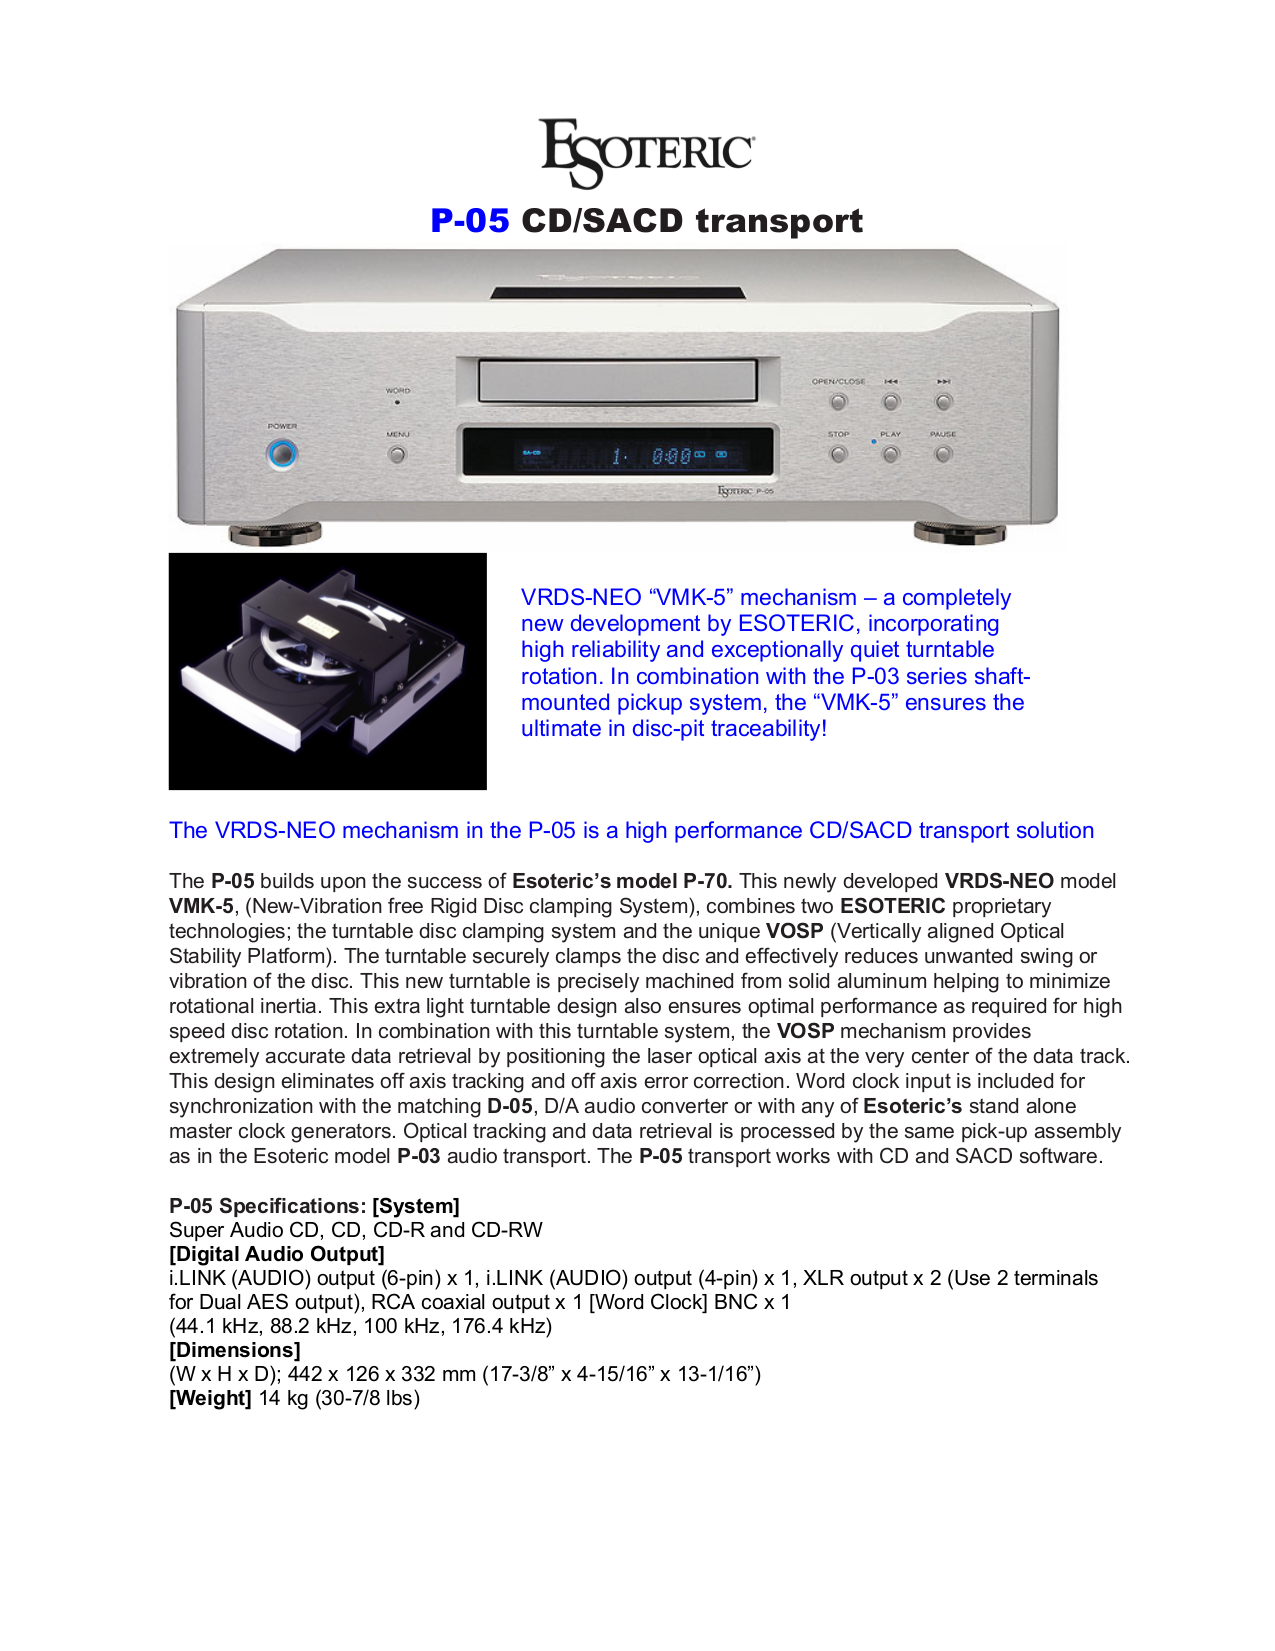 pdf for Teac Other P-03 Disc Transport Systems manual